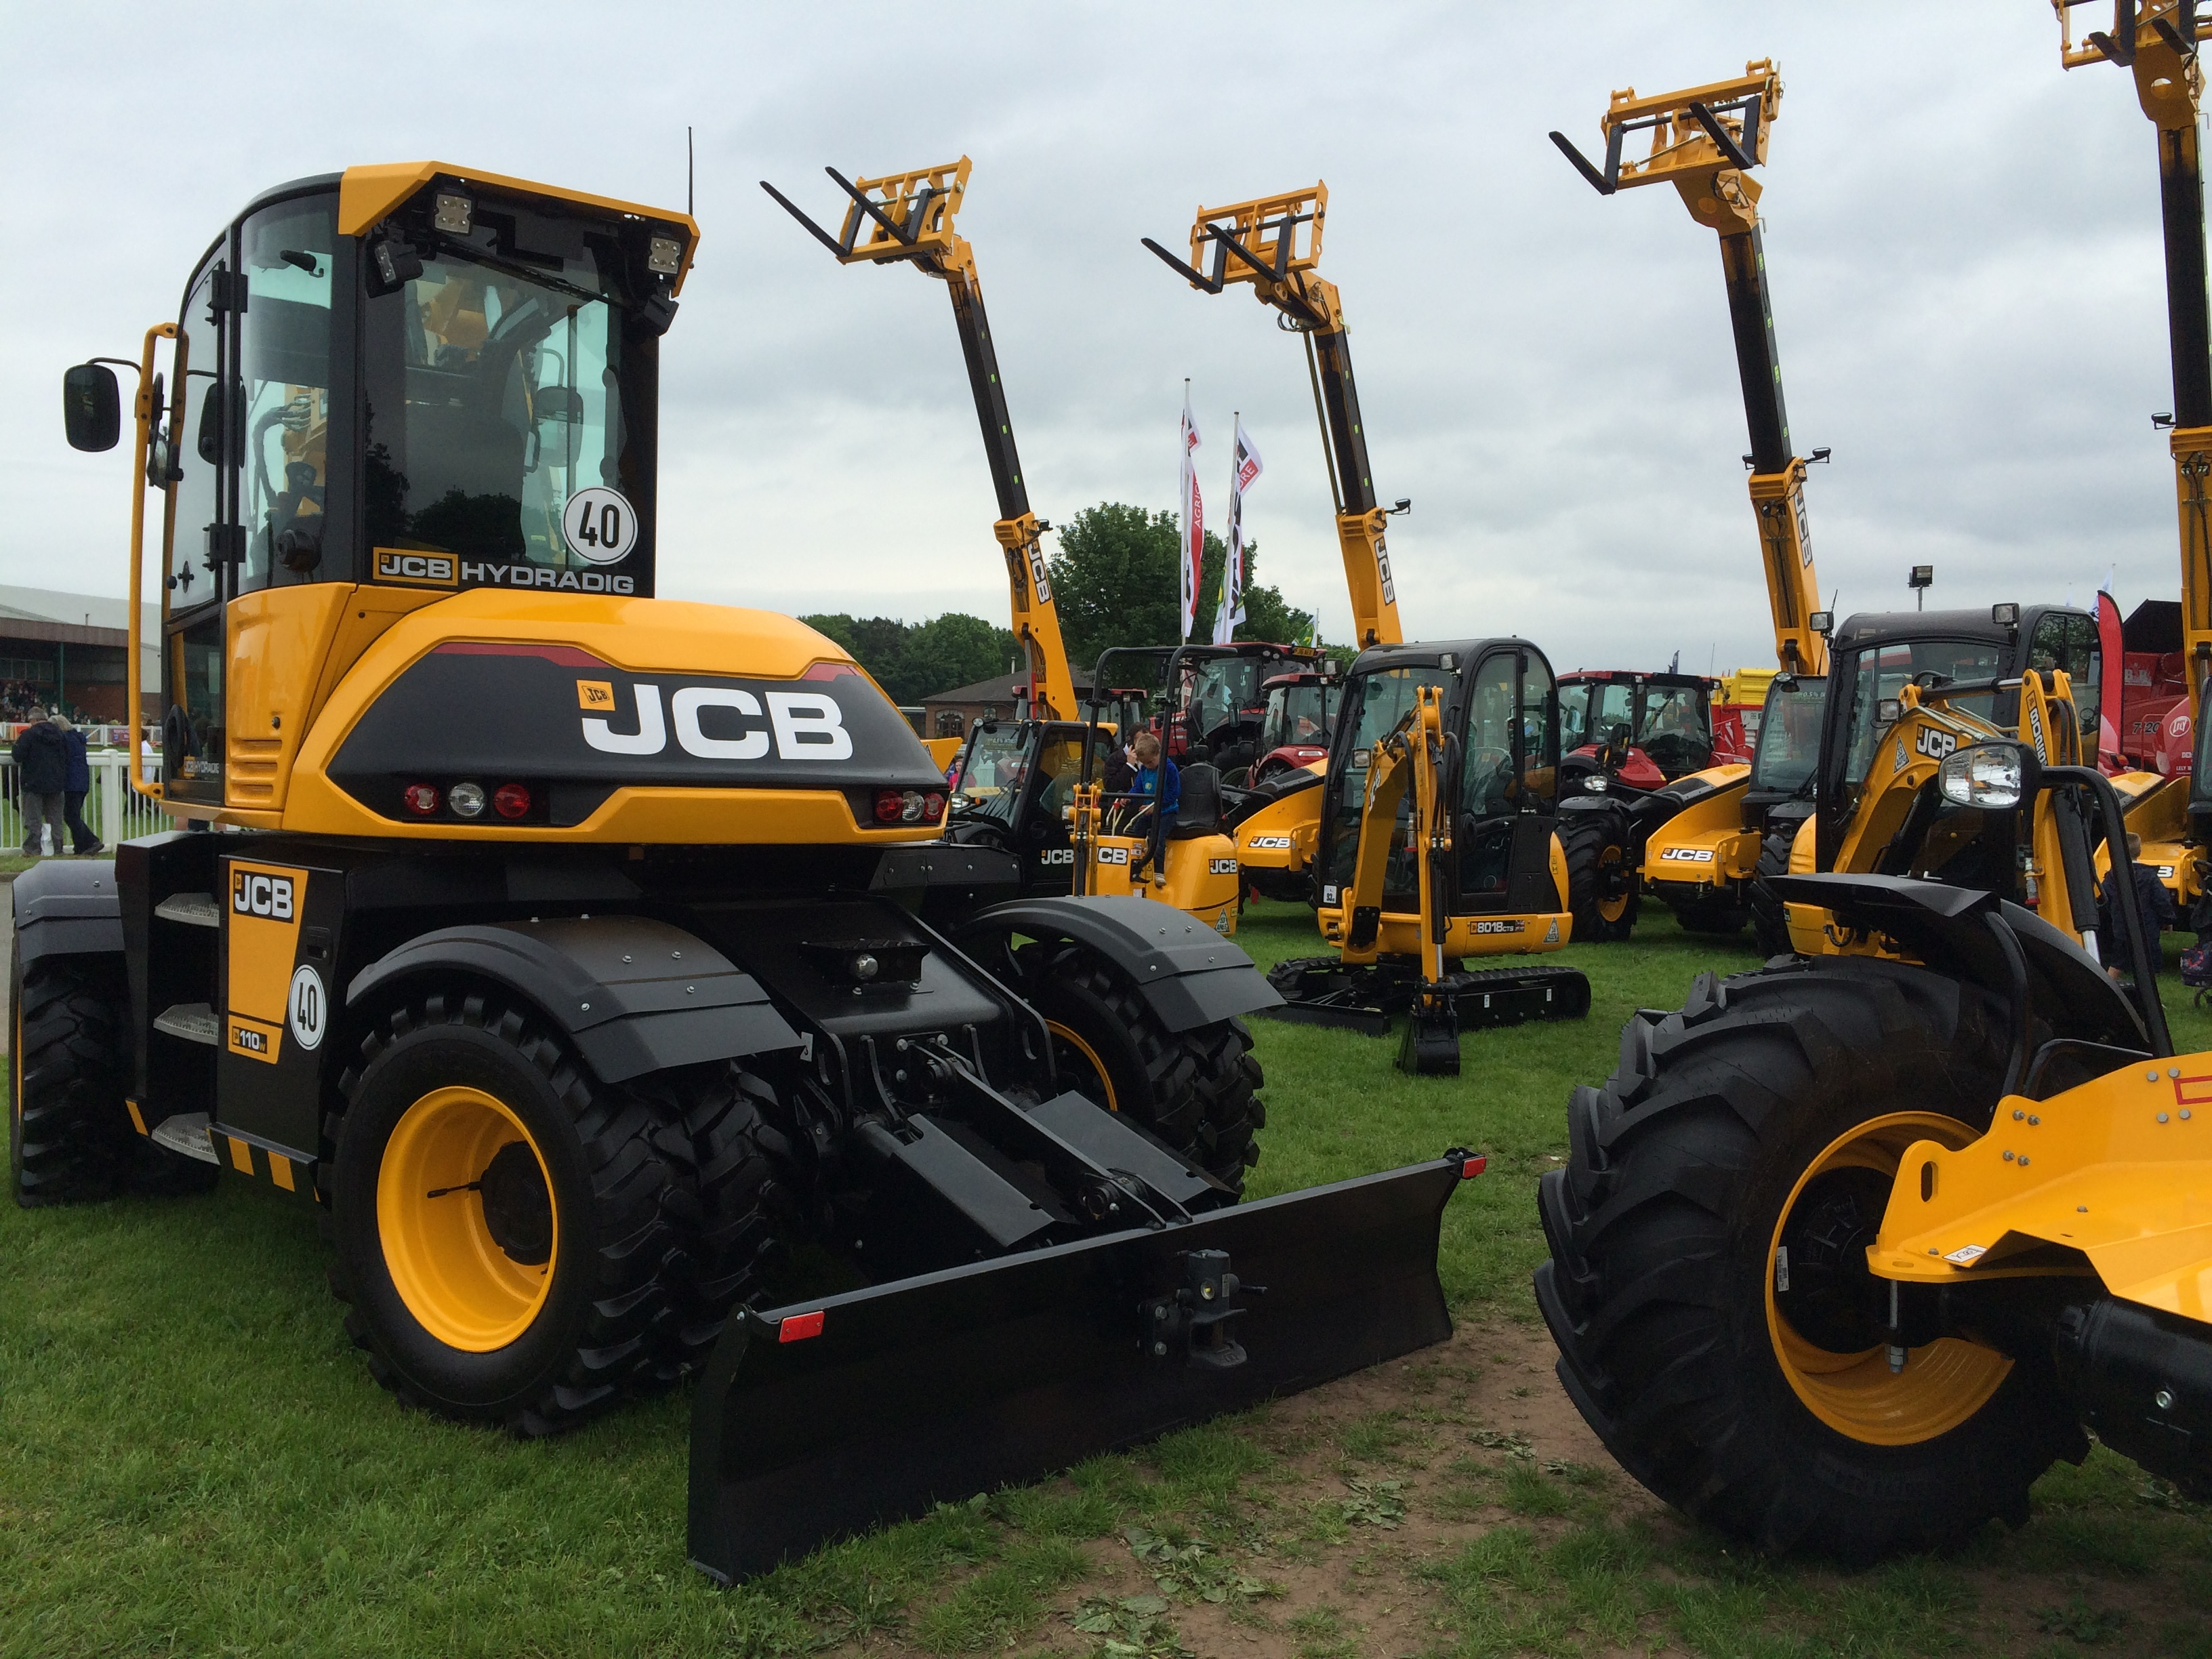 Hydradig at show 4